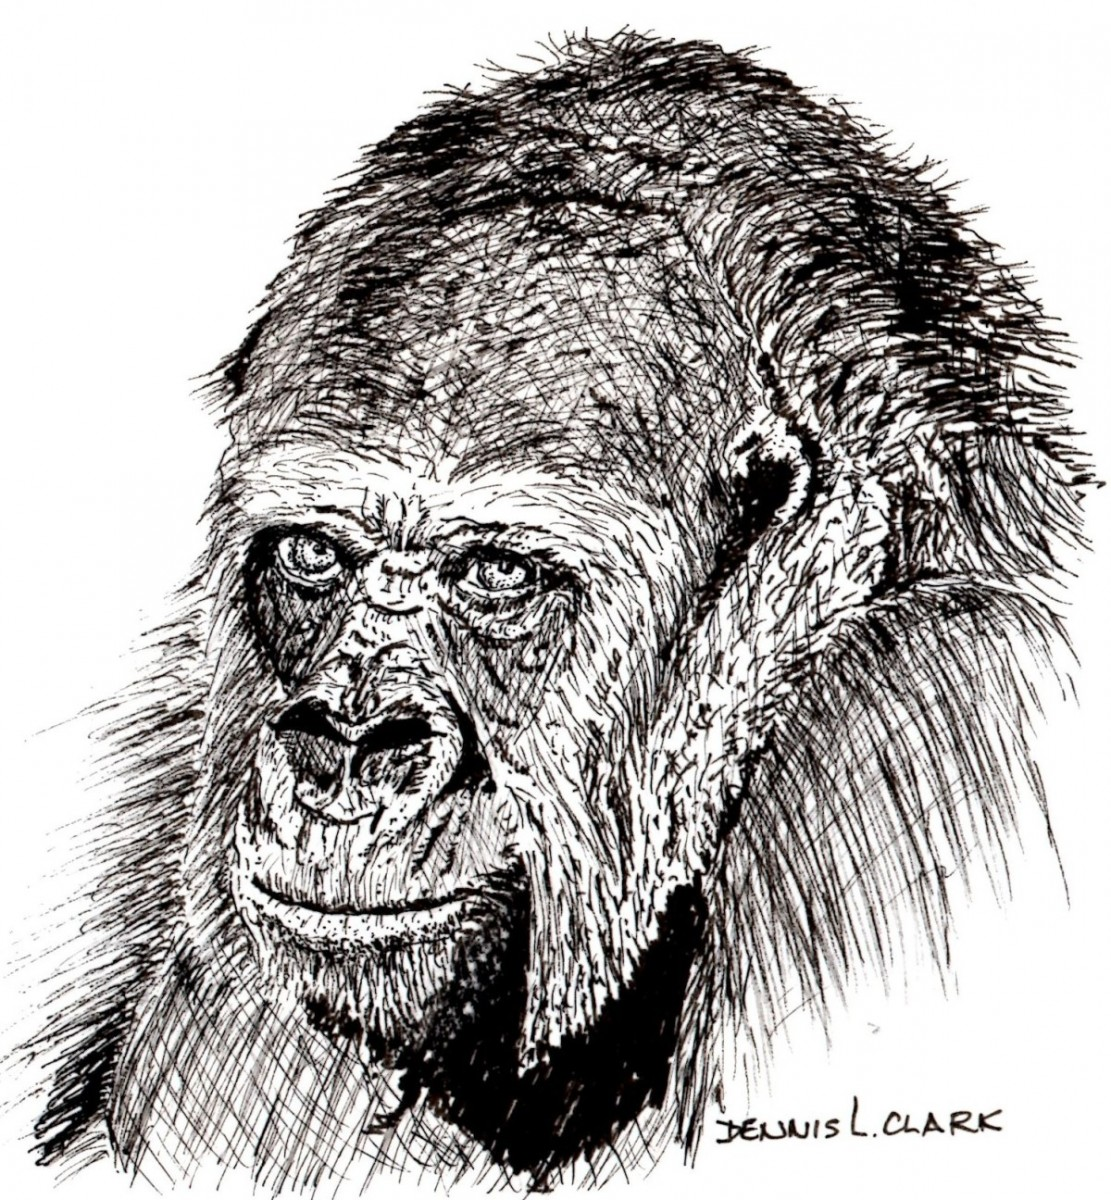 How To Draw A Gorilla Portrait In Pen And Ink